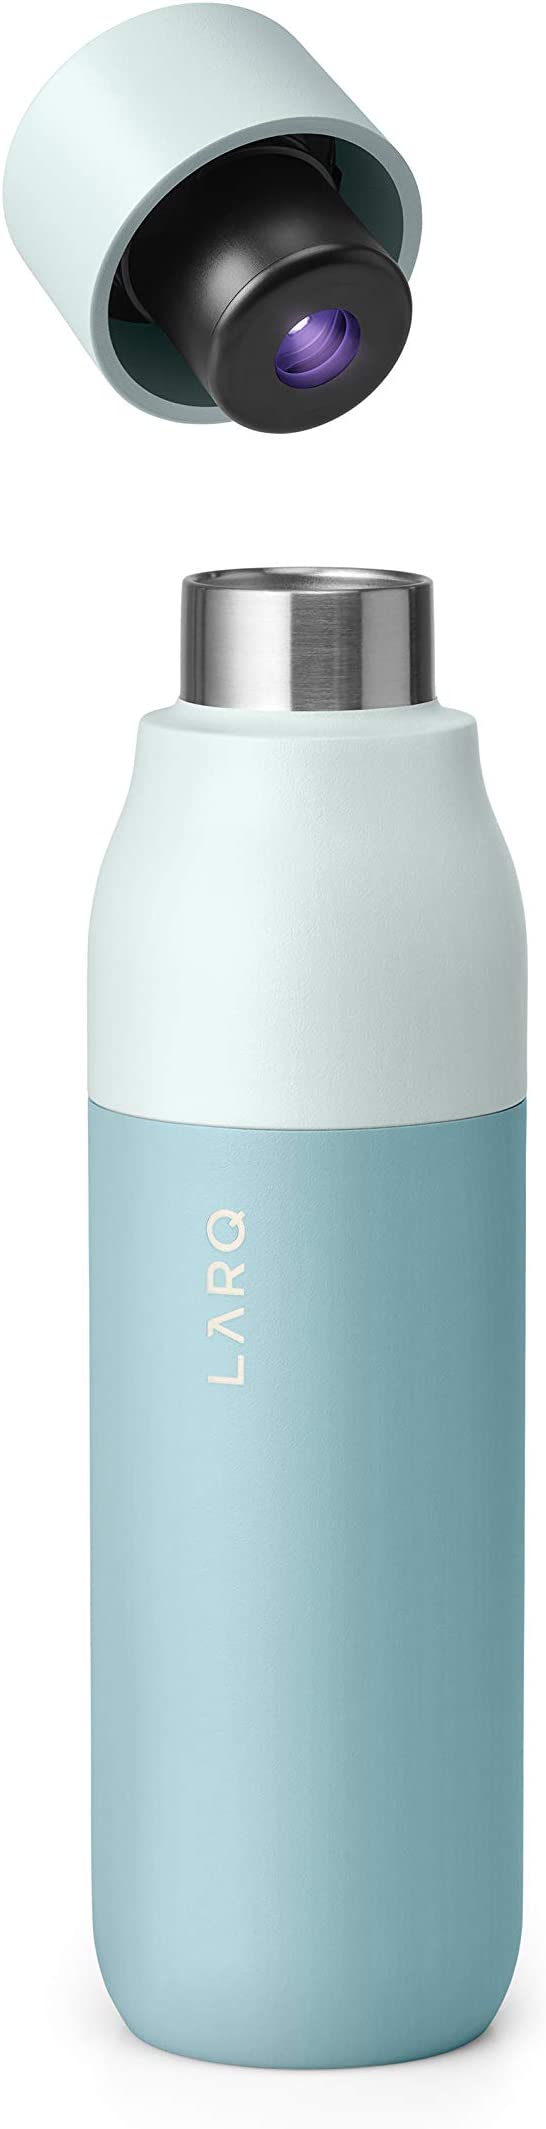 Amazon.com : LARQ Insulated Self-Cleaning and Stainless Steel Water Bottle With UV Water Sanitizer, 17oz, Seaside Mint : Sports & Outdoors